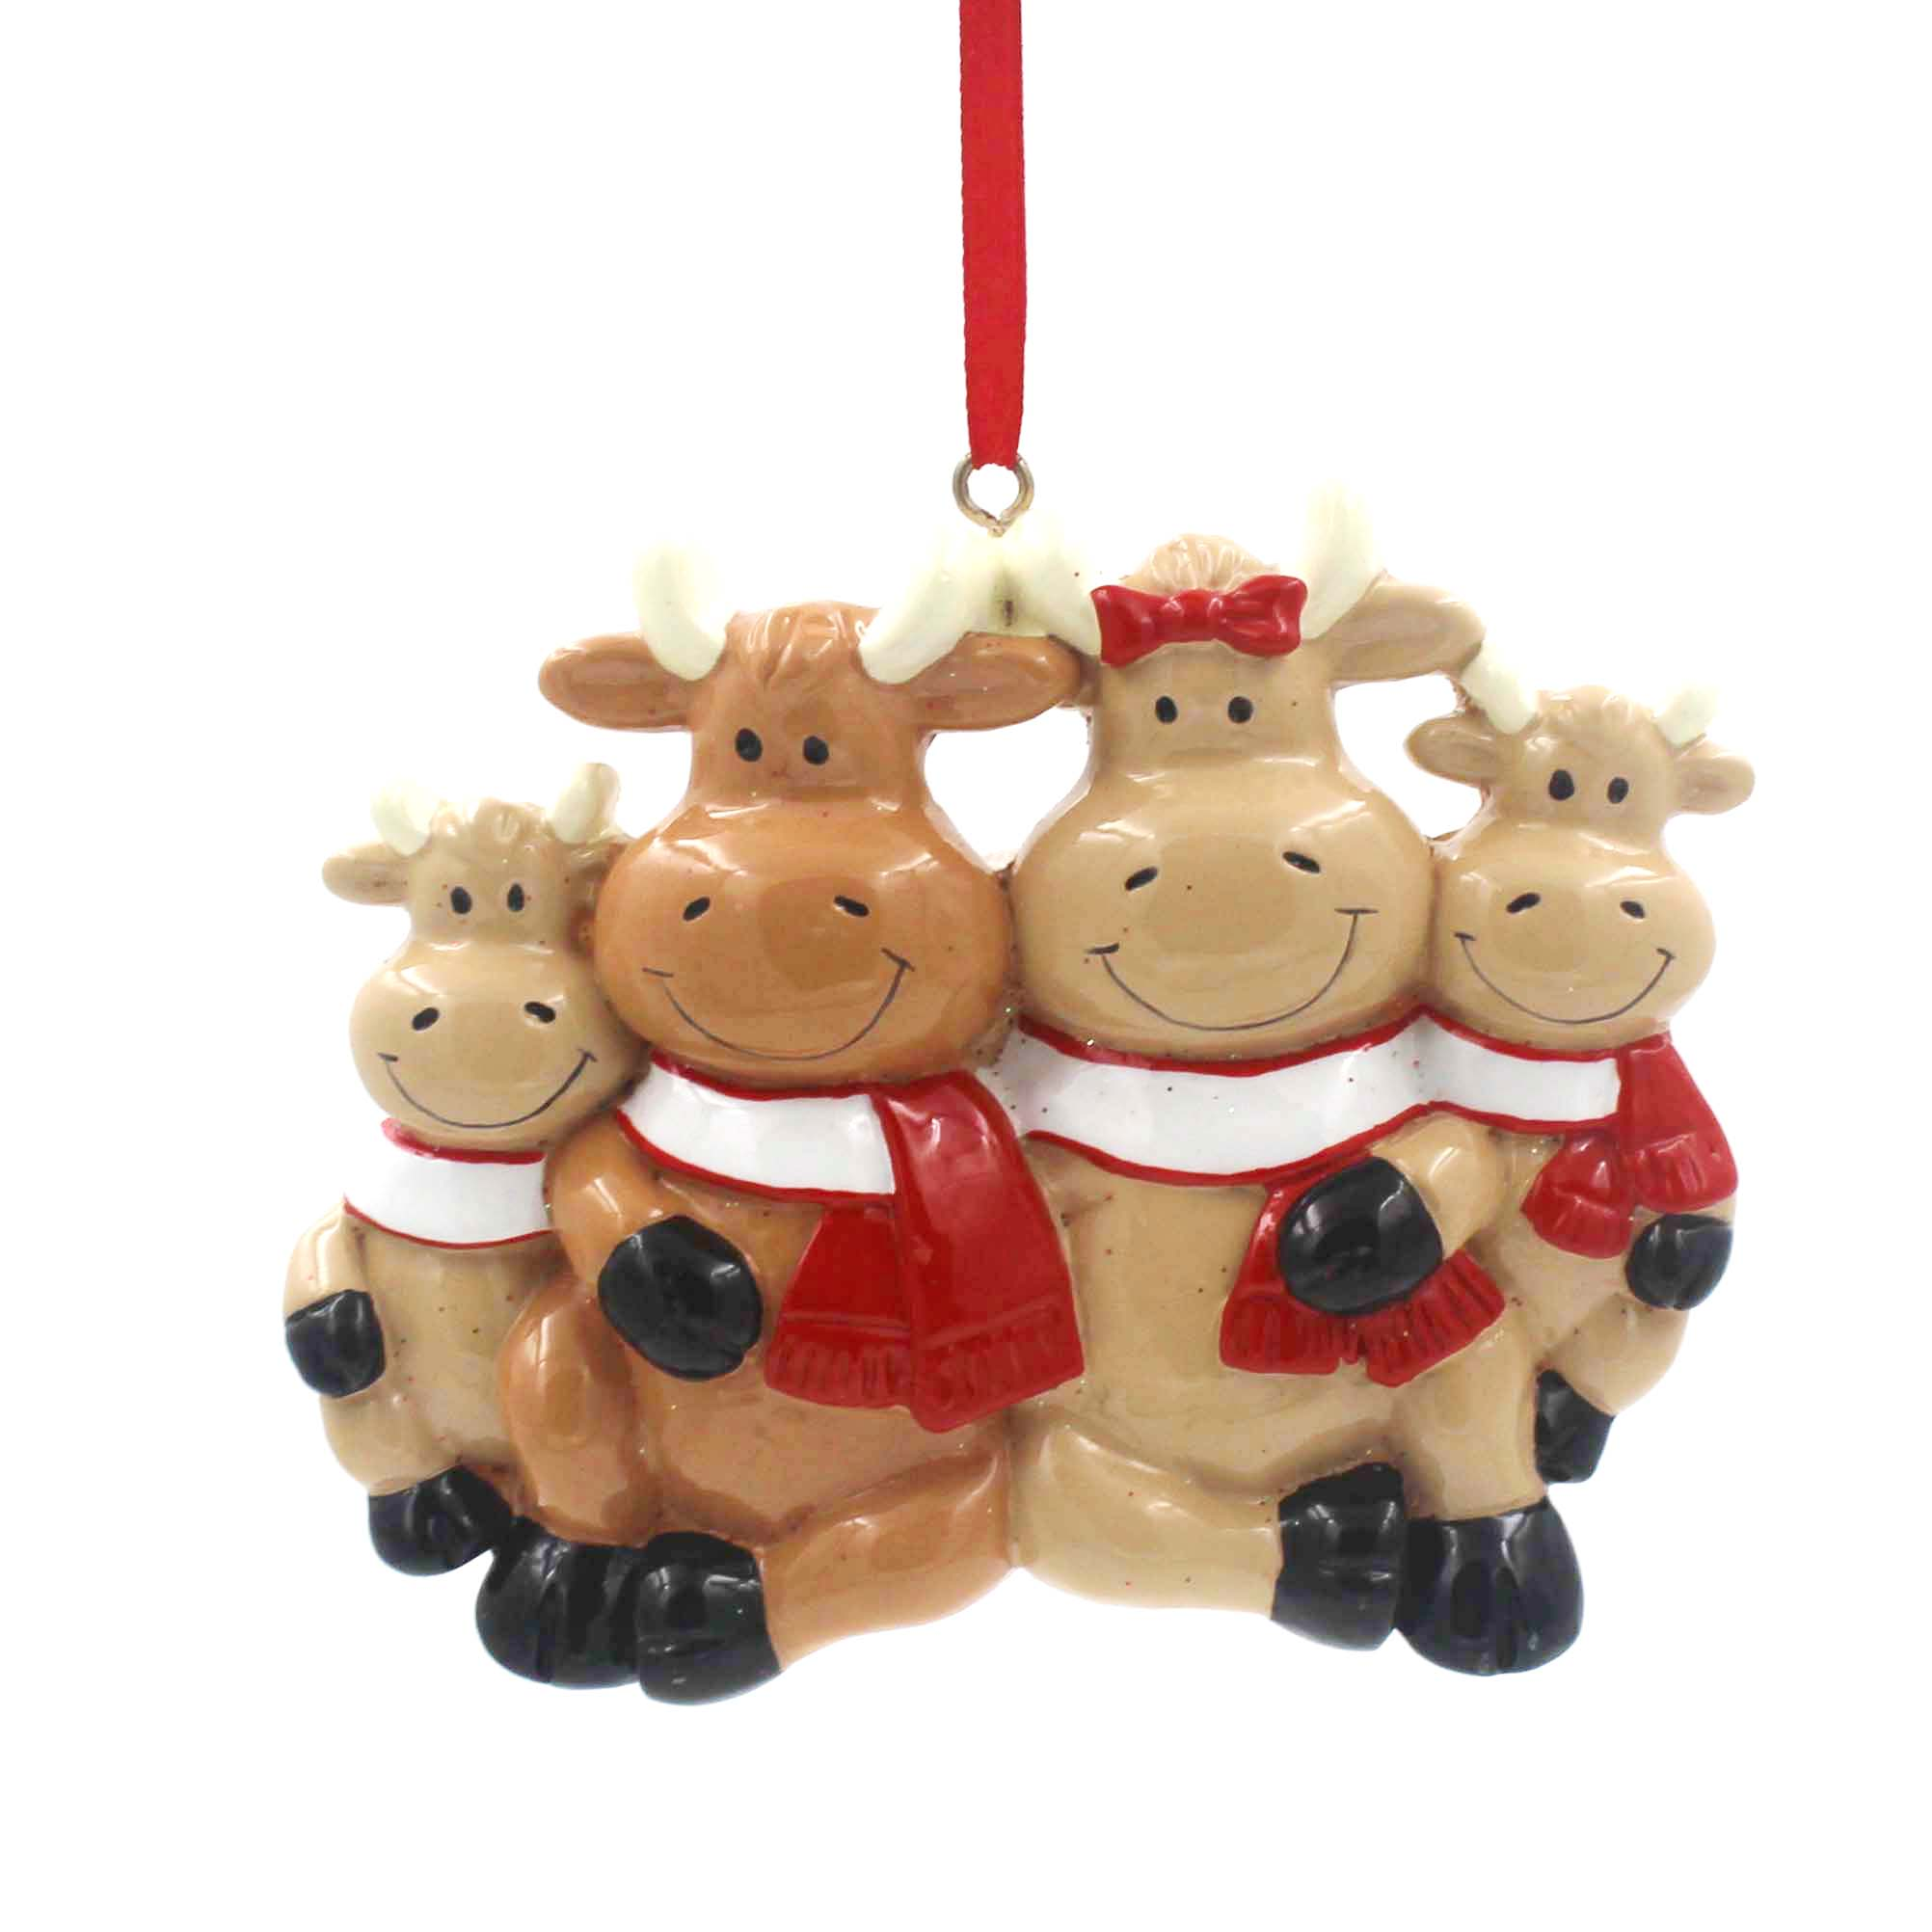 Cattle Family Of 6 Personalized Christmas Tree Ornament